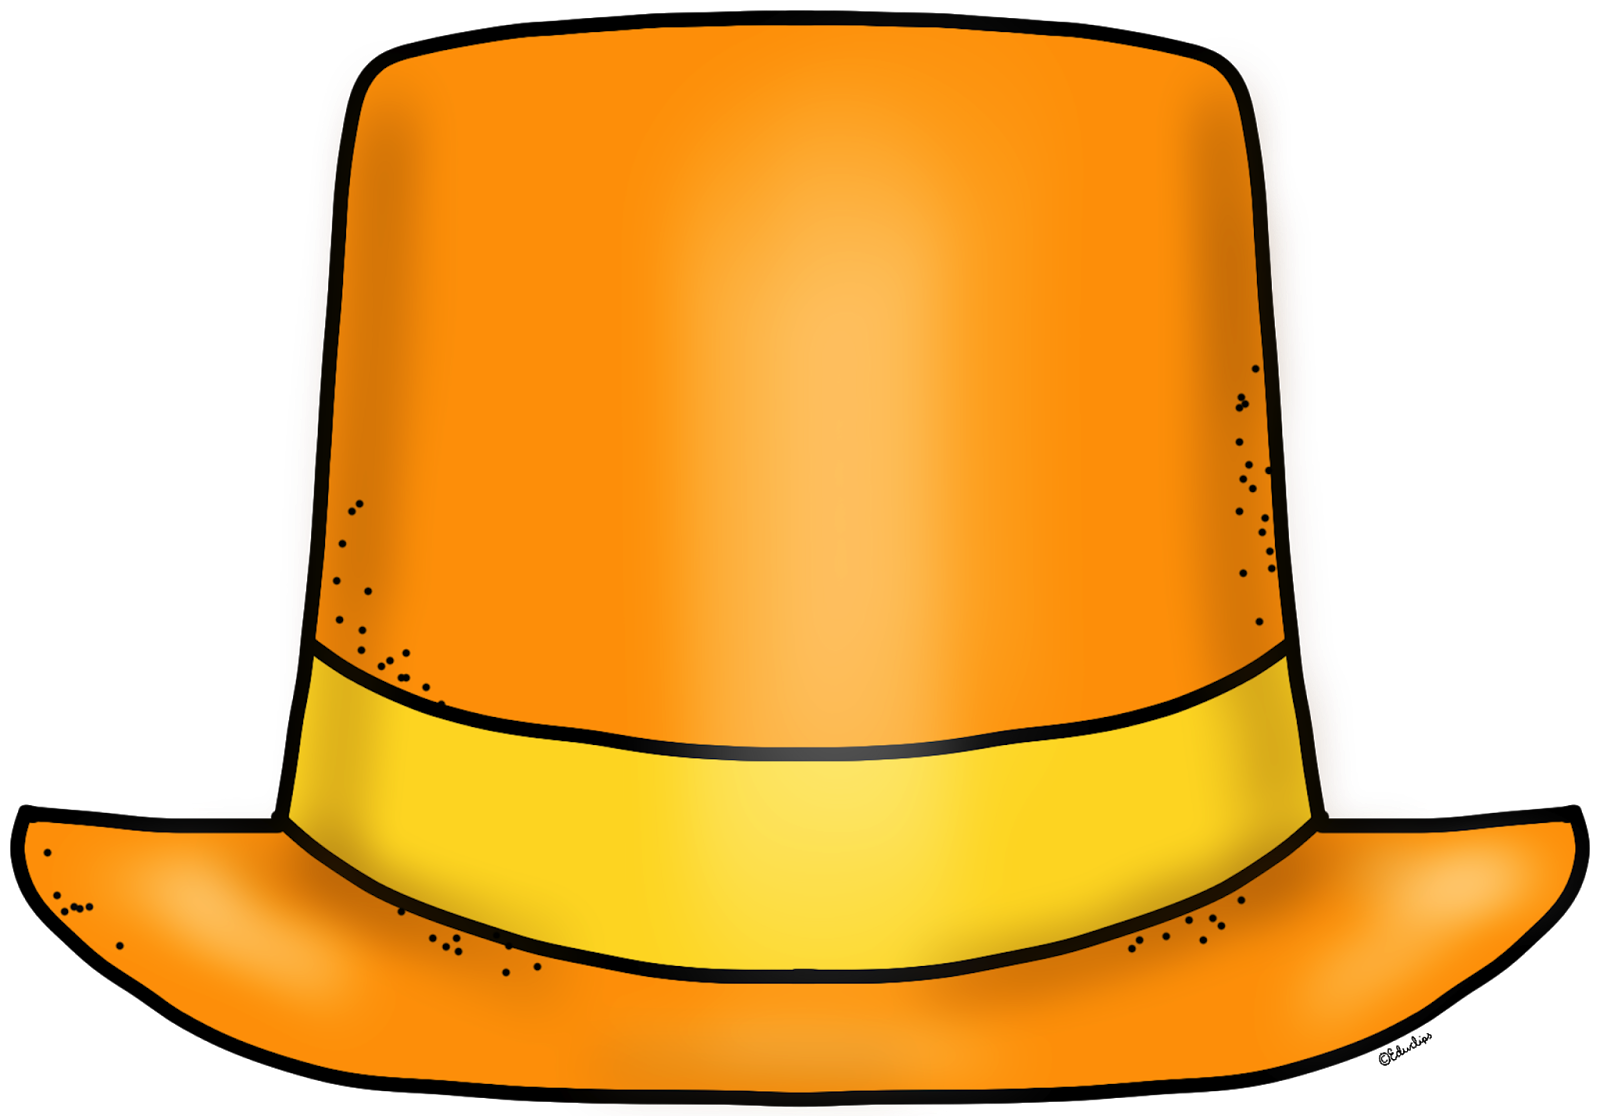 1600x1116 Free Stylish Man In Top Hat Clipart Clipart Image Image